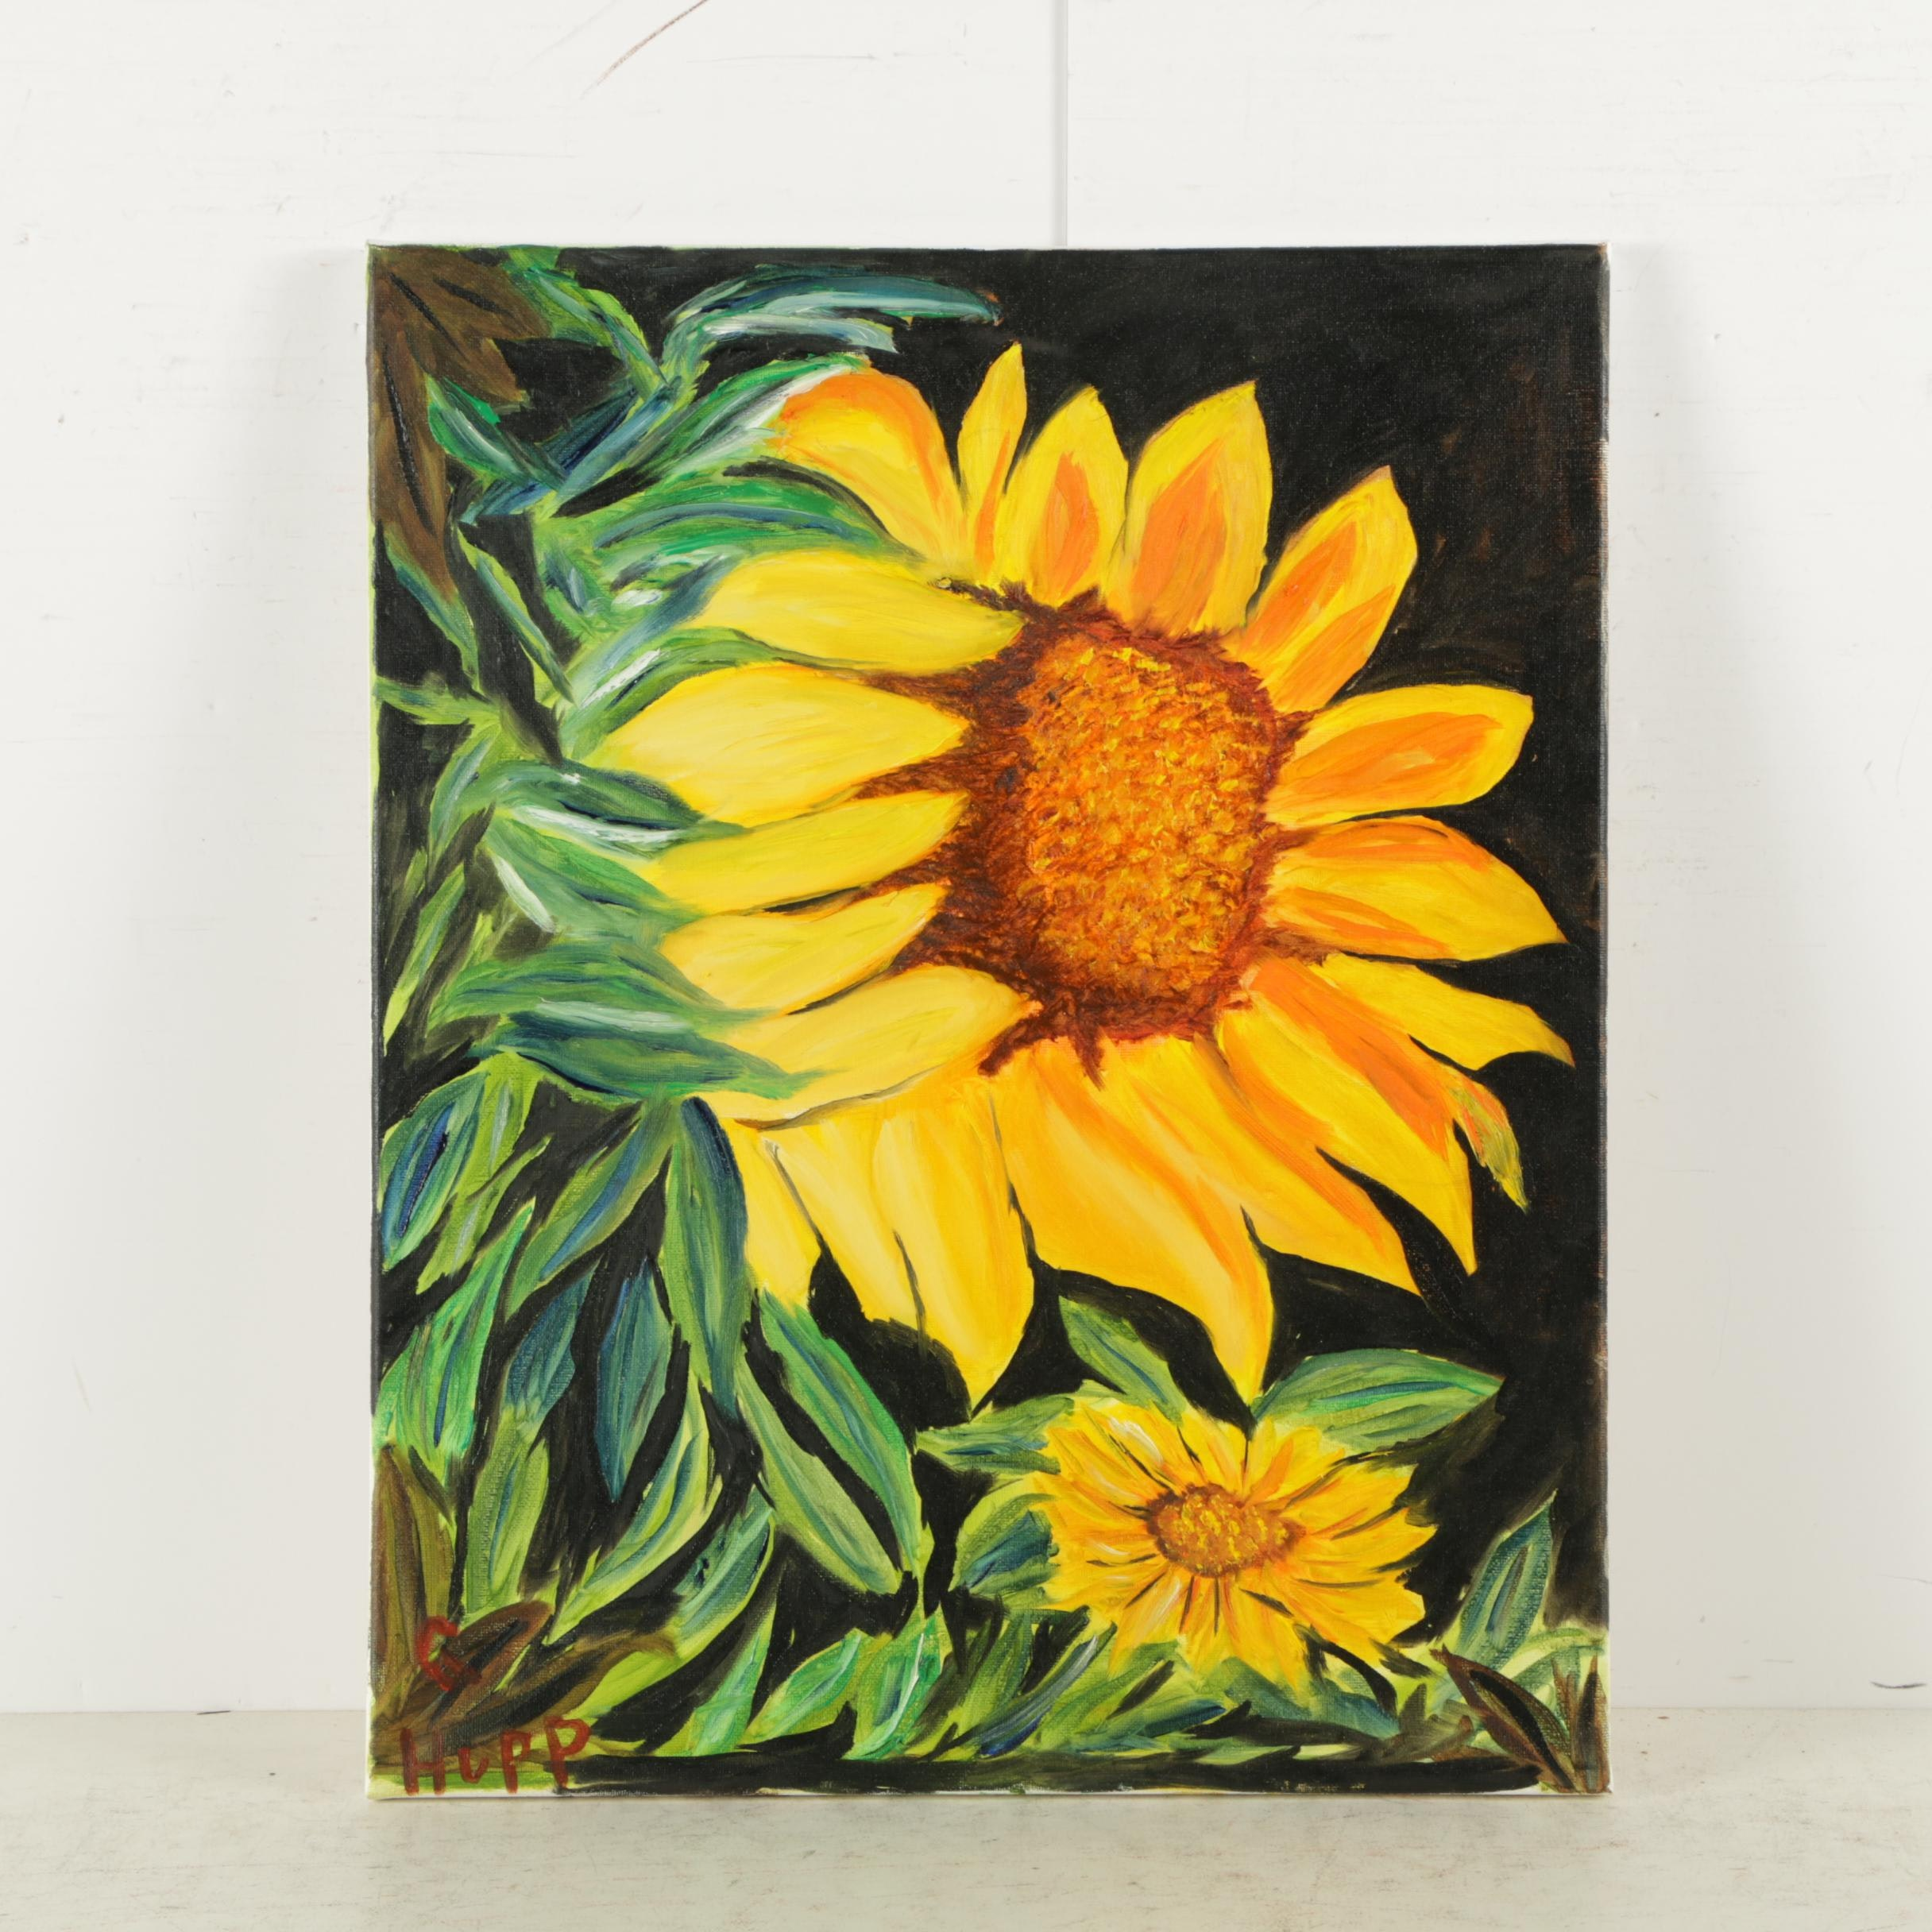 G. Hupp Oil Painting on Canvas of Sunflowers